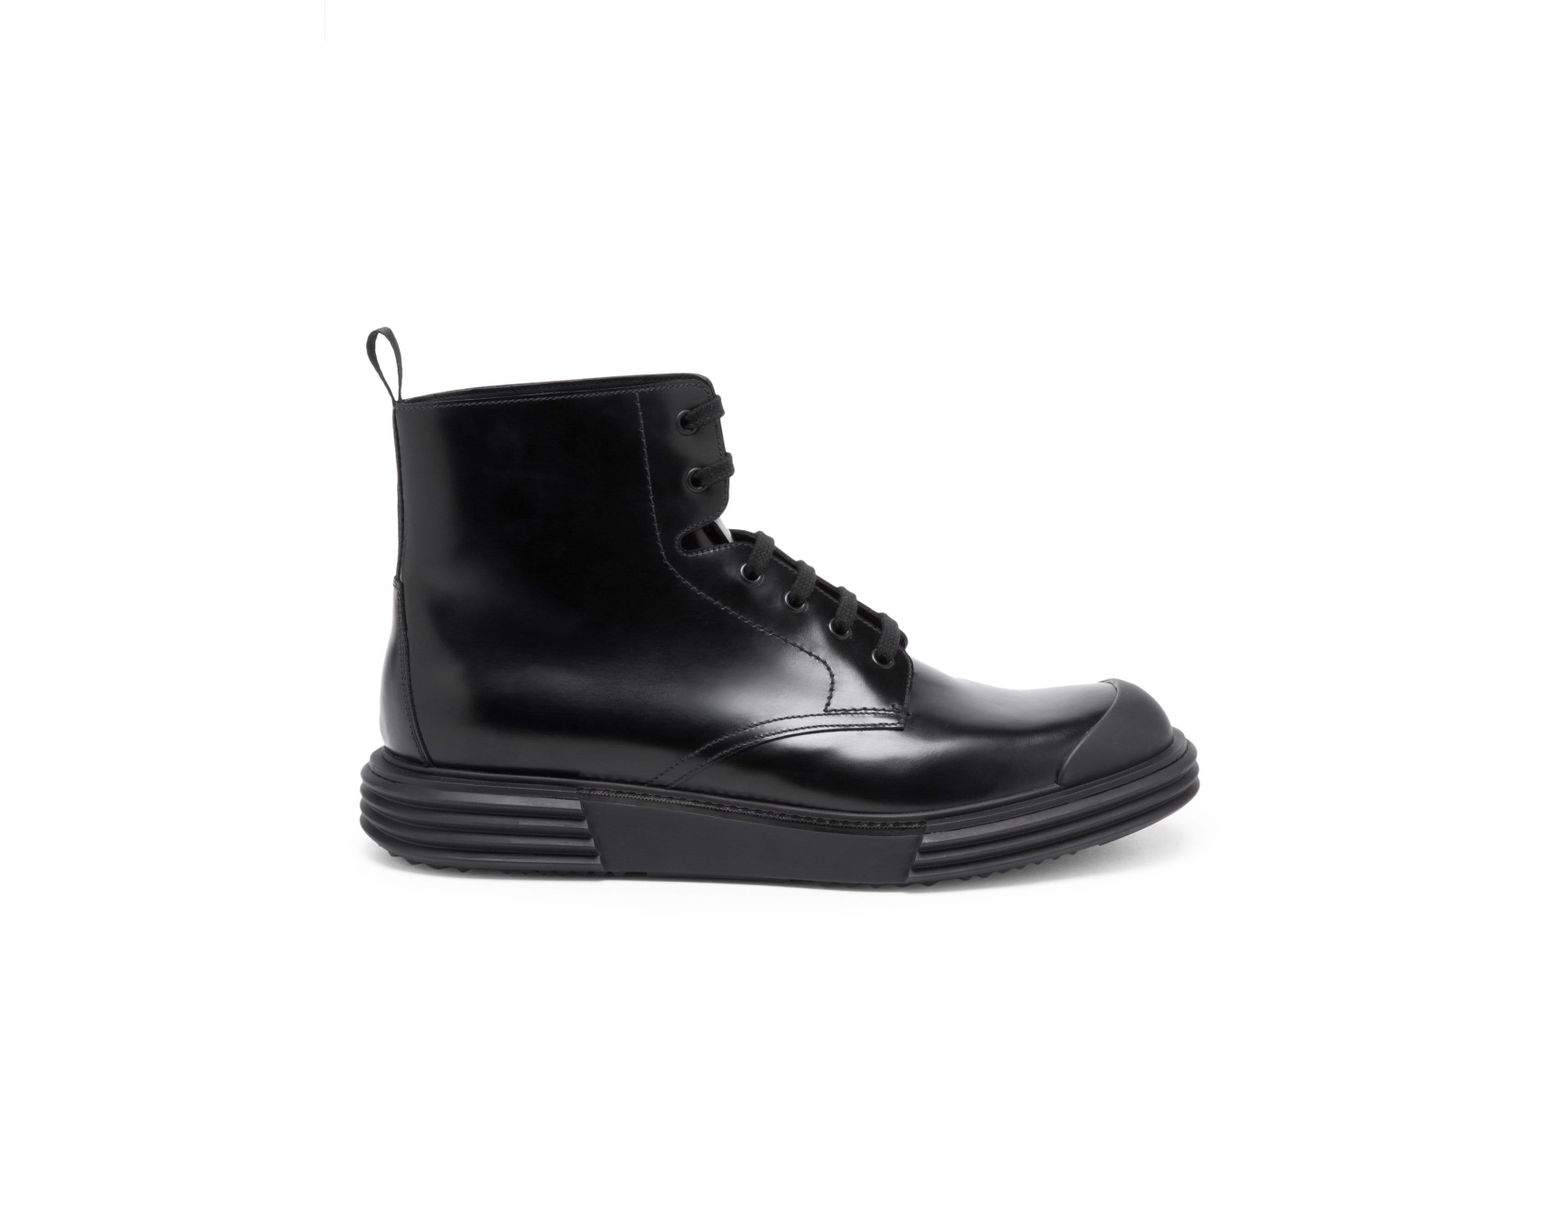 30b756b6 Men's Black Opaque Leather Laced Boots